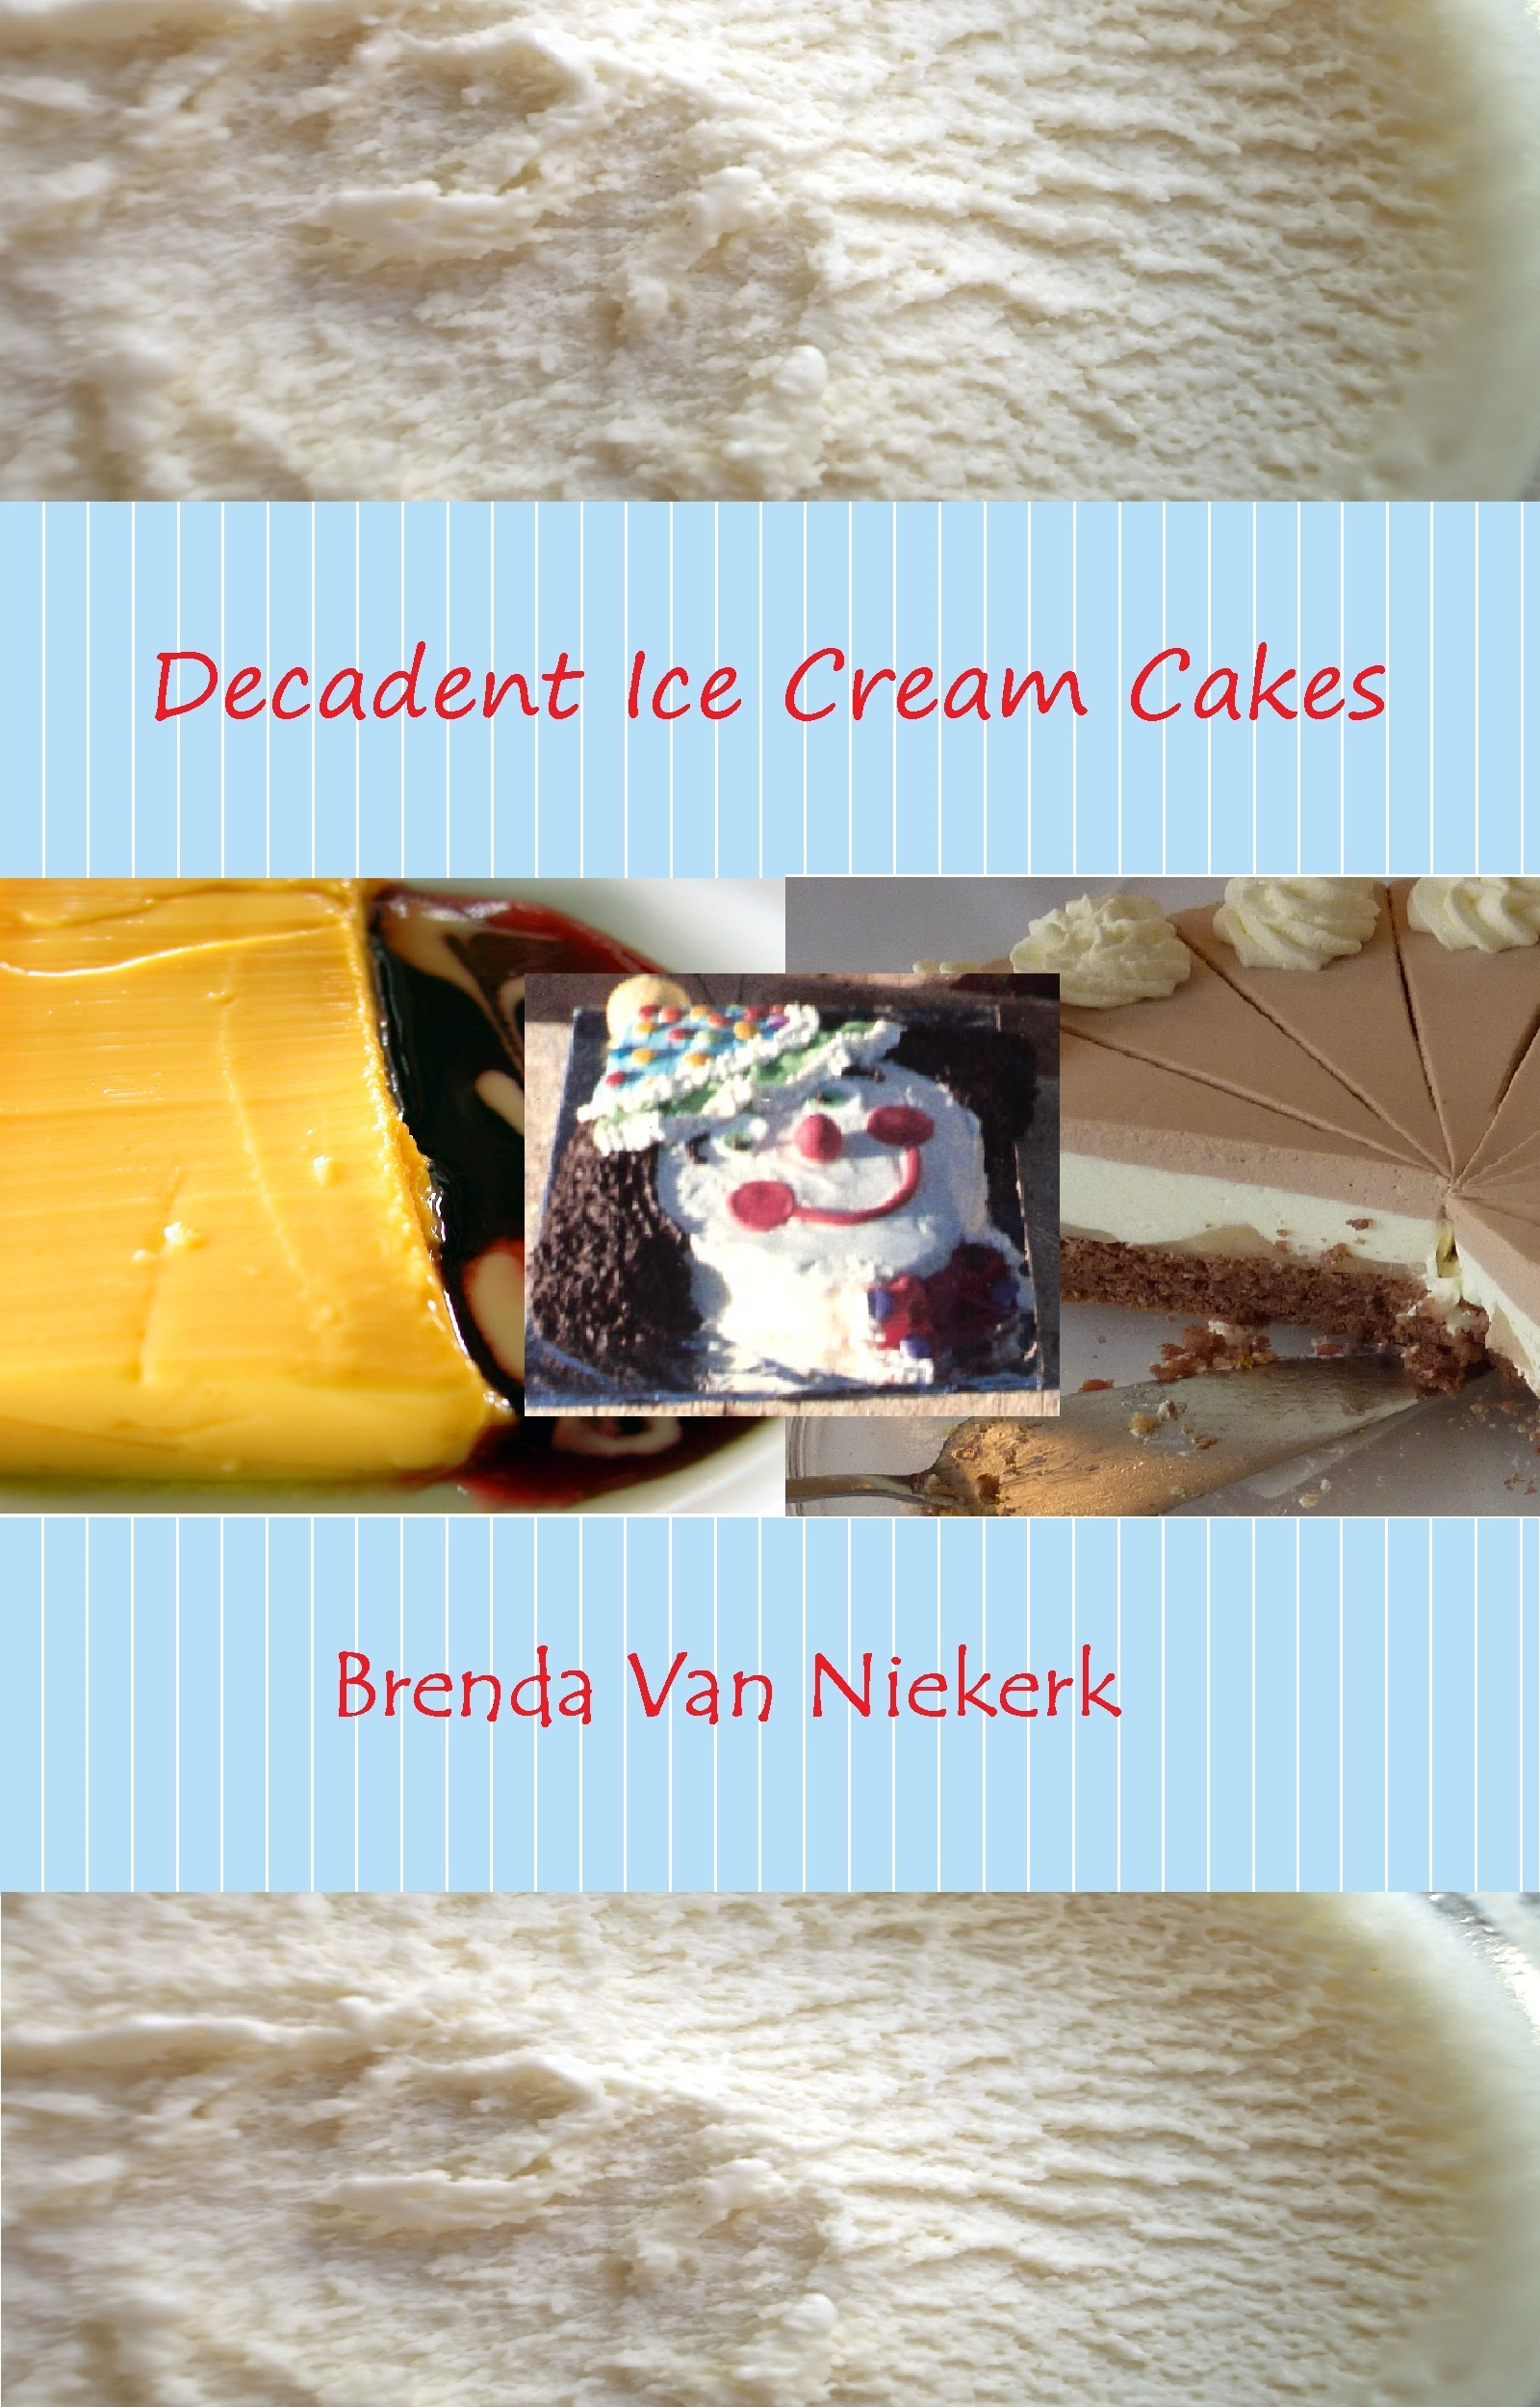 Decadent Ice Cream Cakes